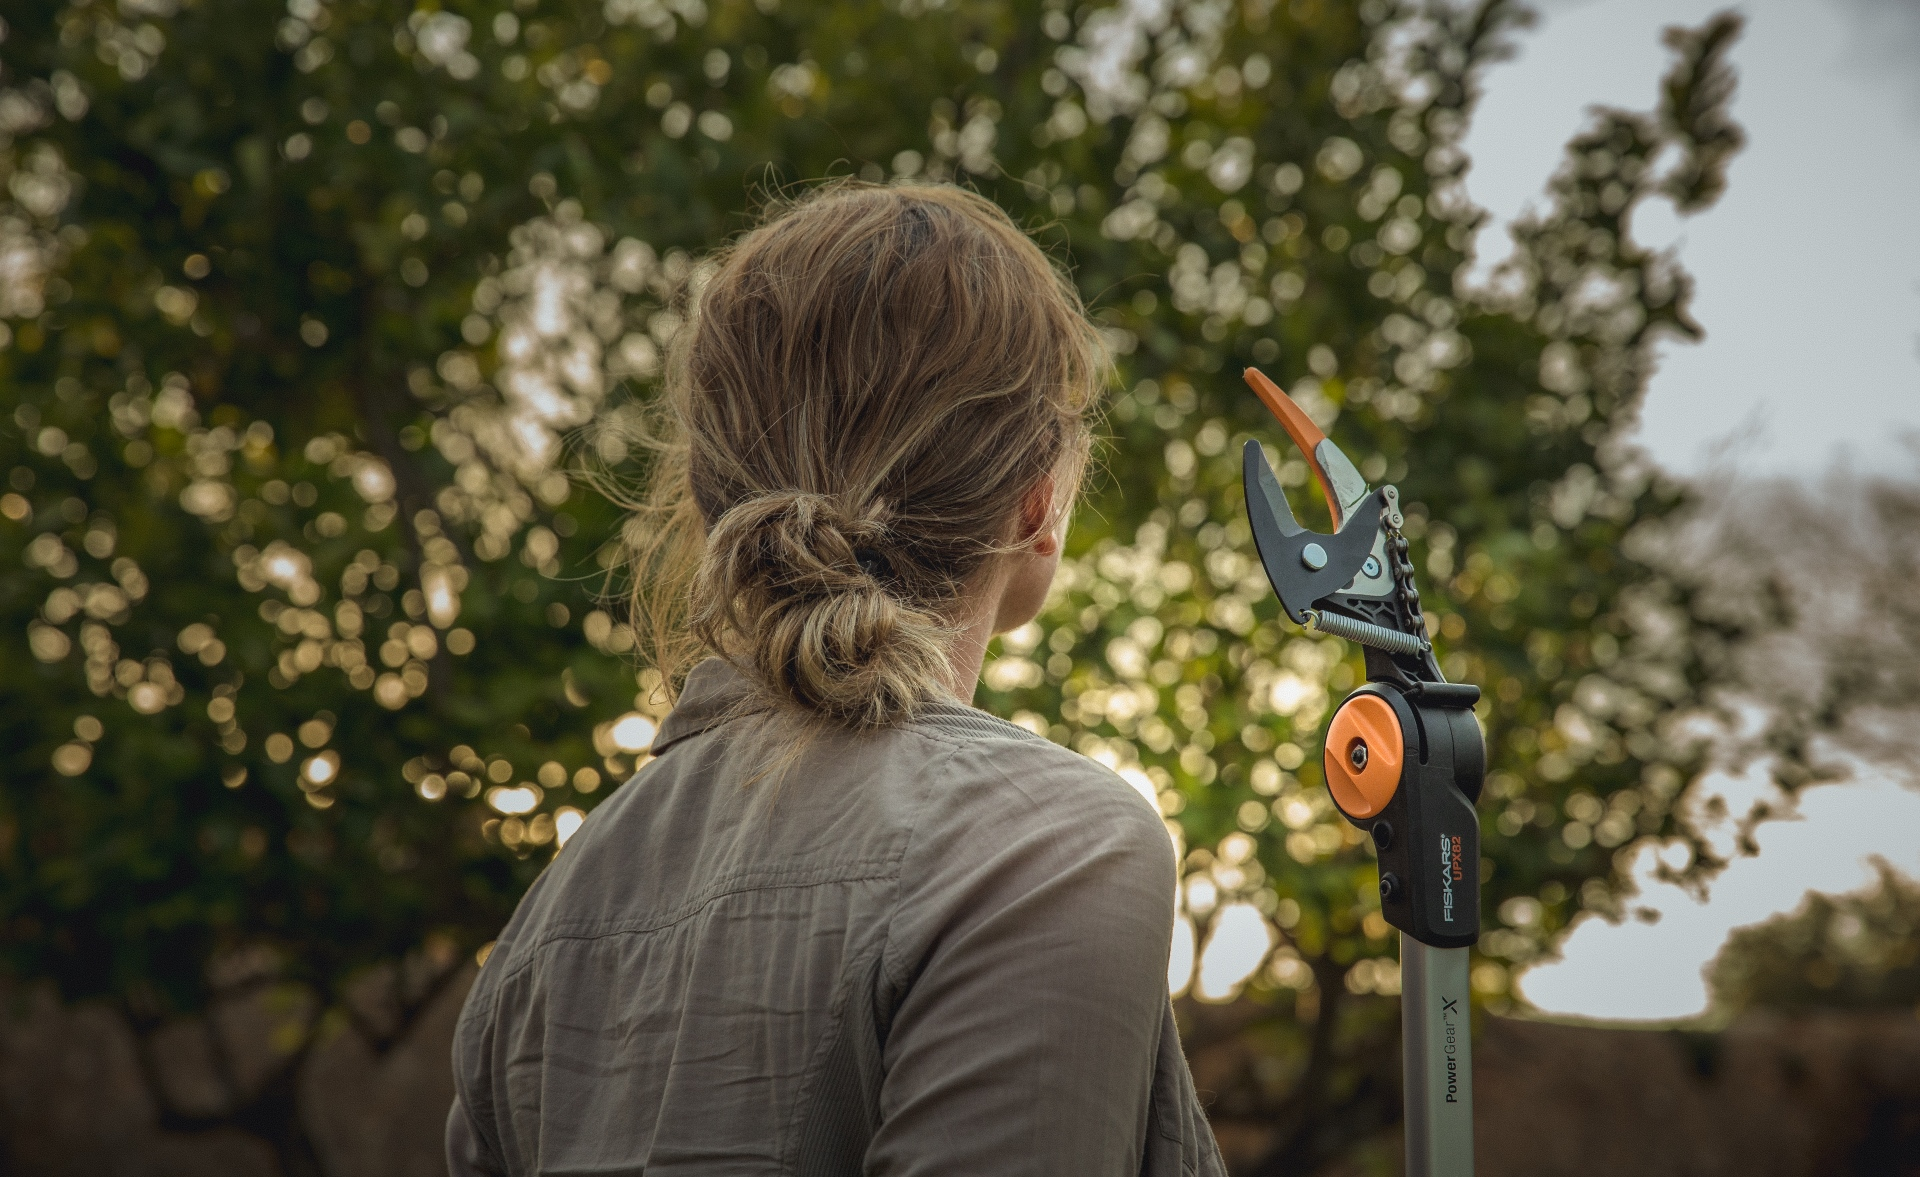 Fiskars Garden Action Tree Pruner